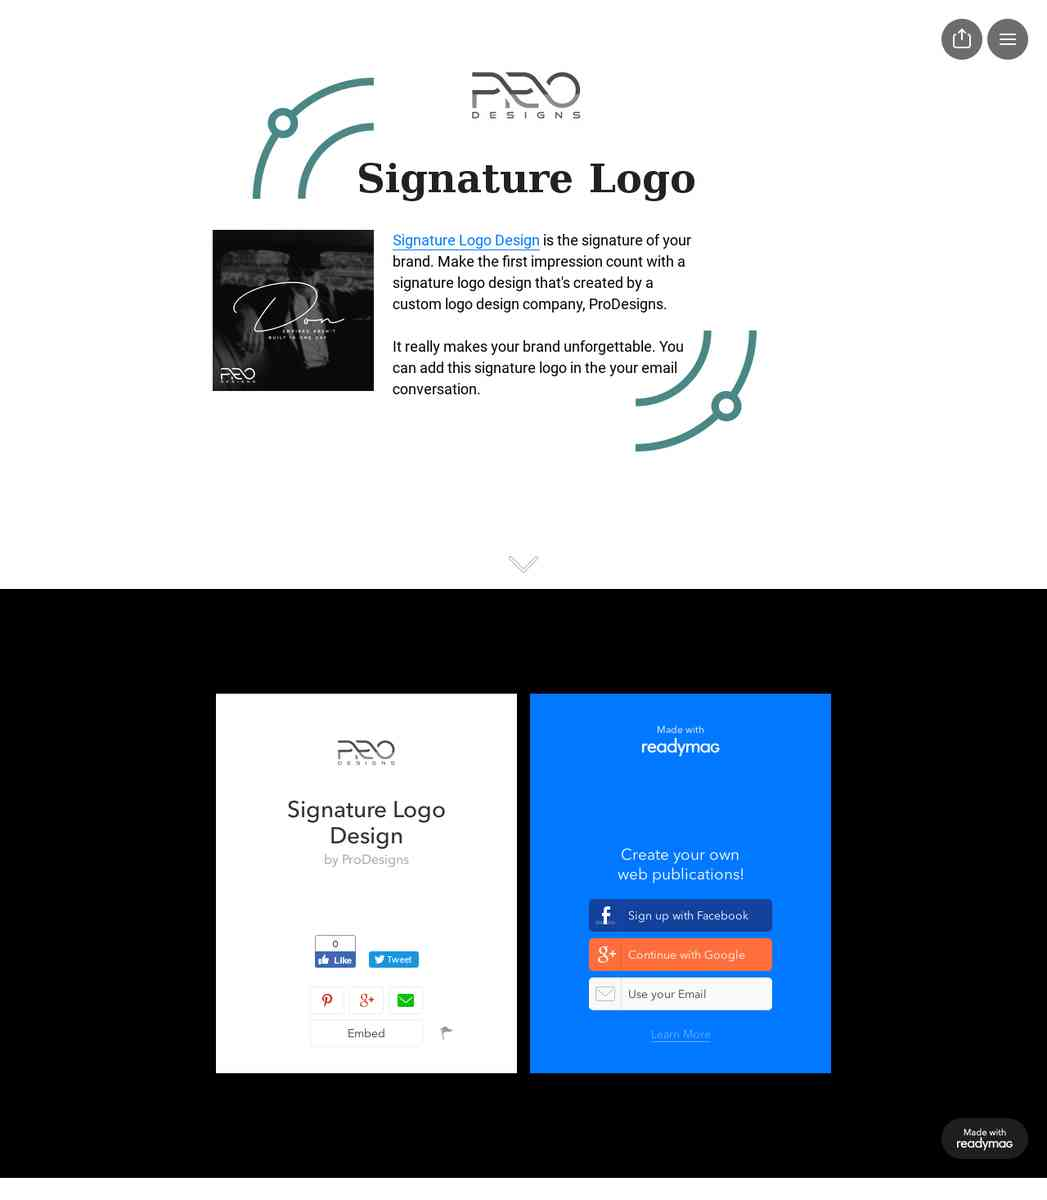 Signature Logo Design, Create Signature Logo